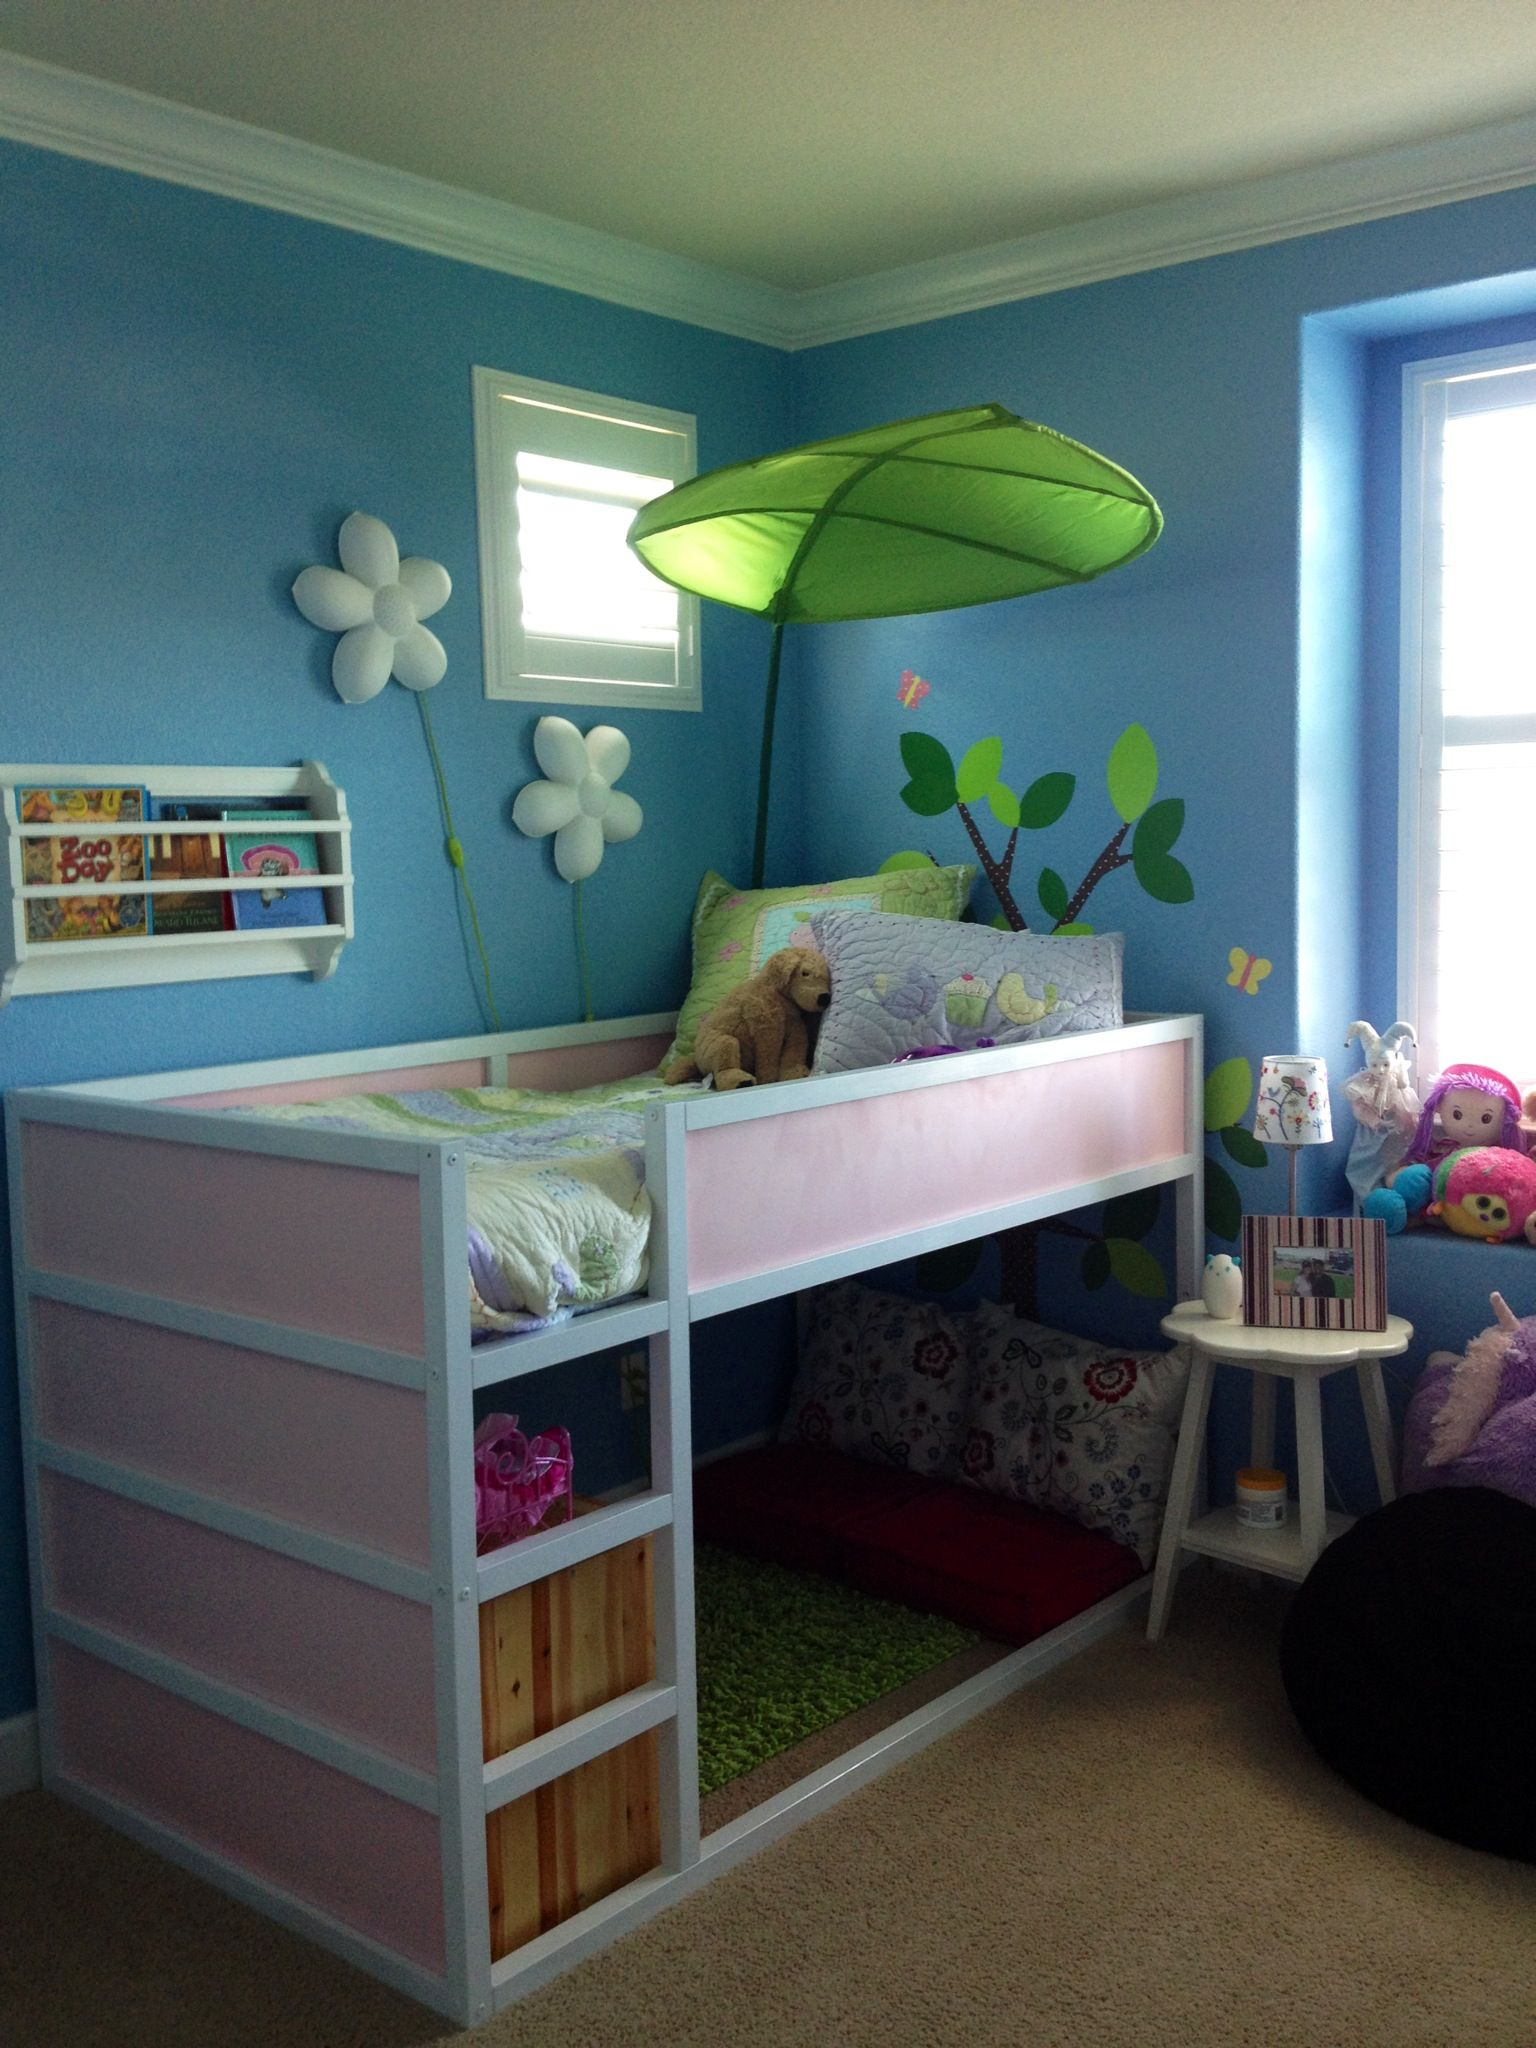 Kura bed from ikea with a reading nook below ikea kura bed hack pinterest kura bed - Kids room ideas ikea ...